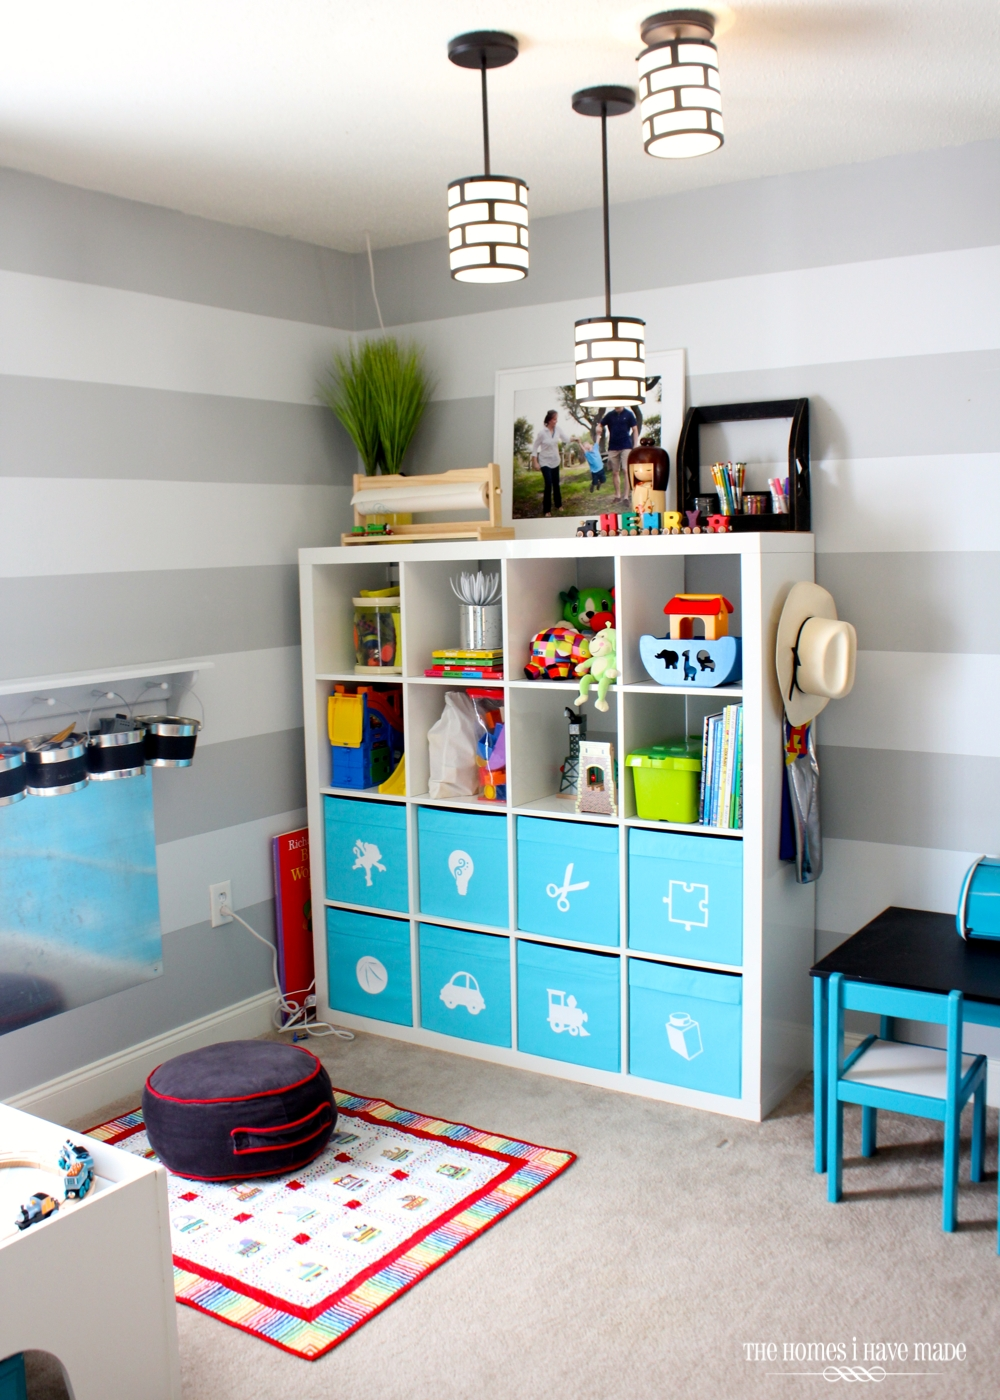 Toy storage in an ikea expedit the homes i have made - Habitaciones de ikea ...